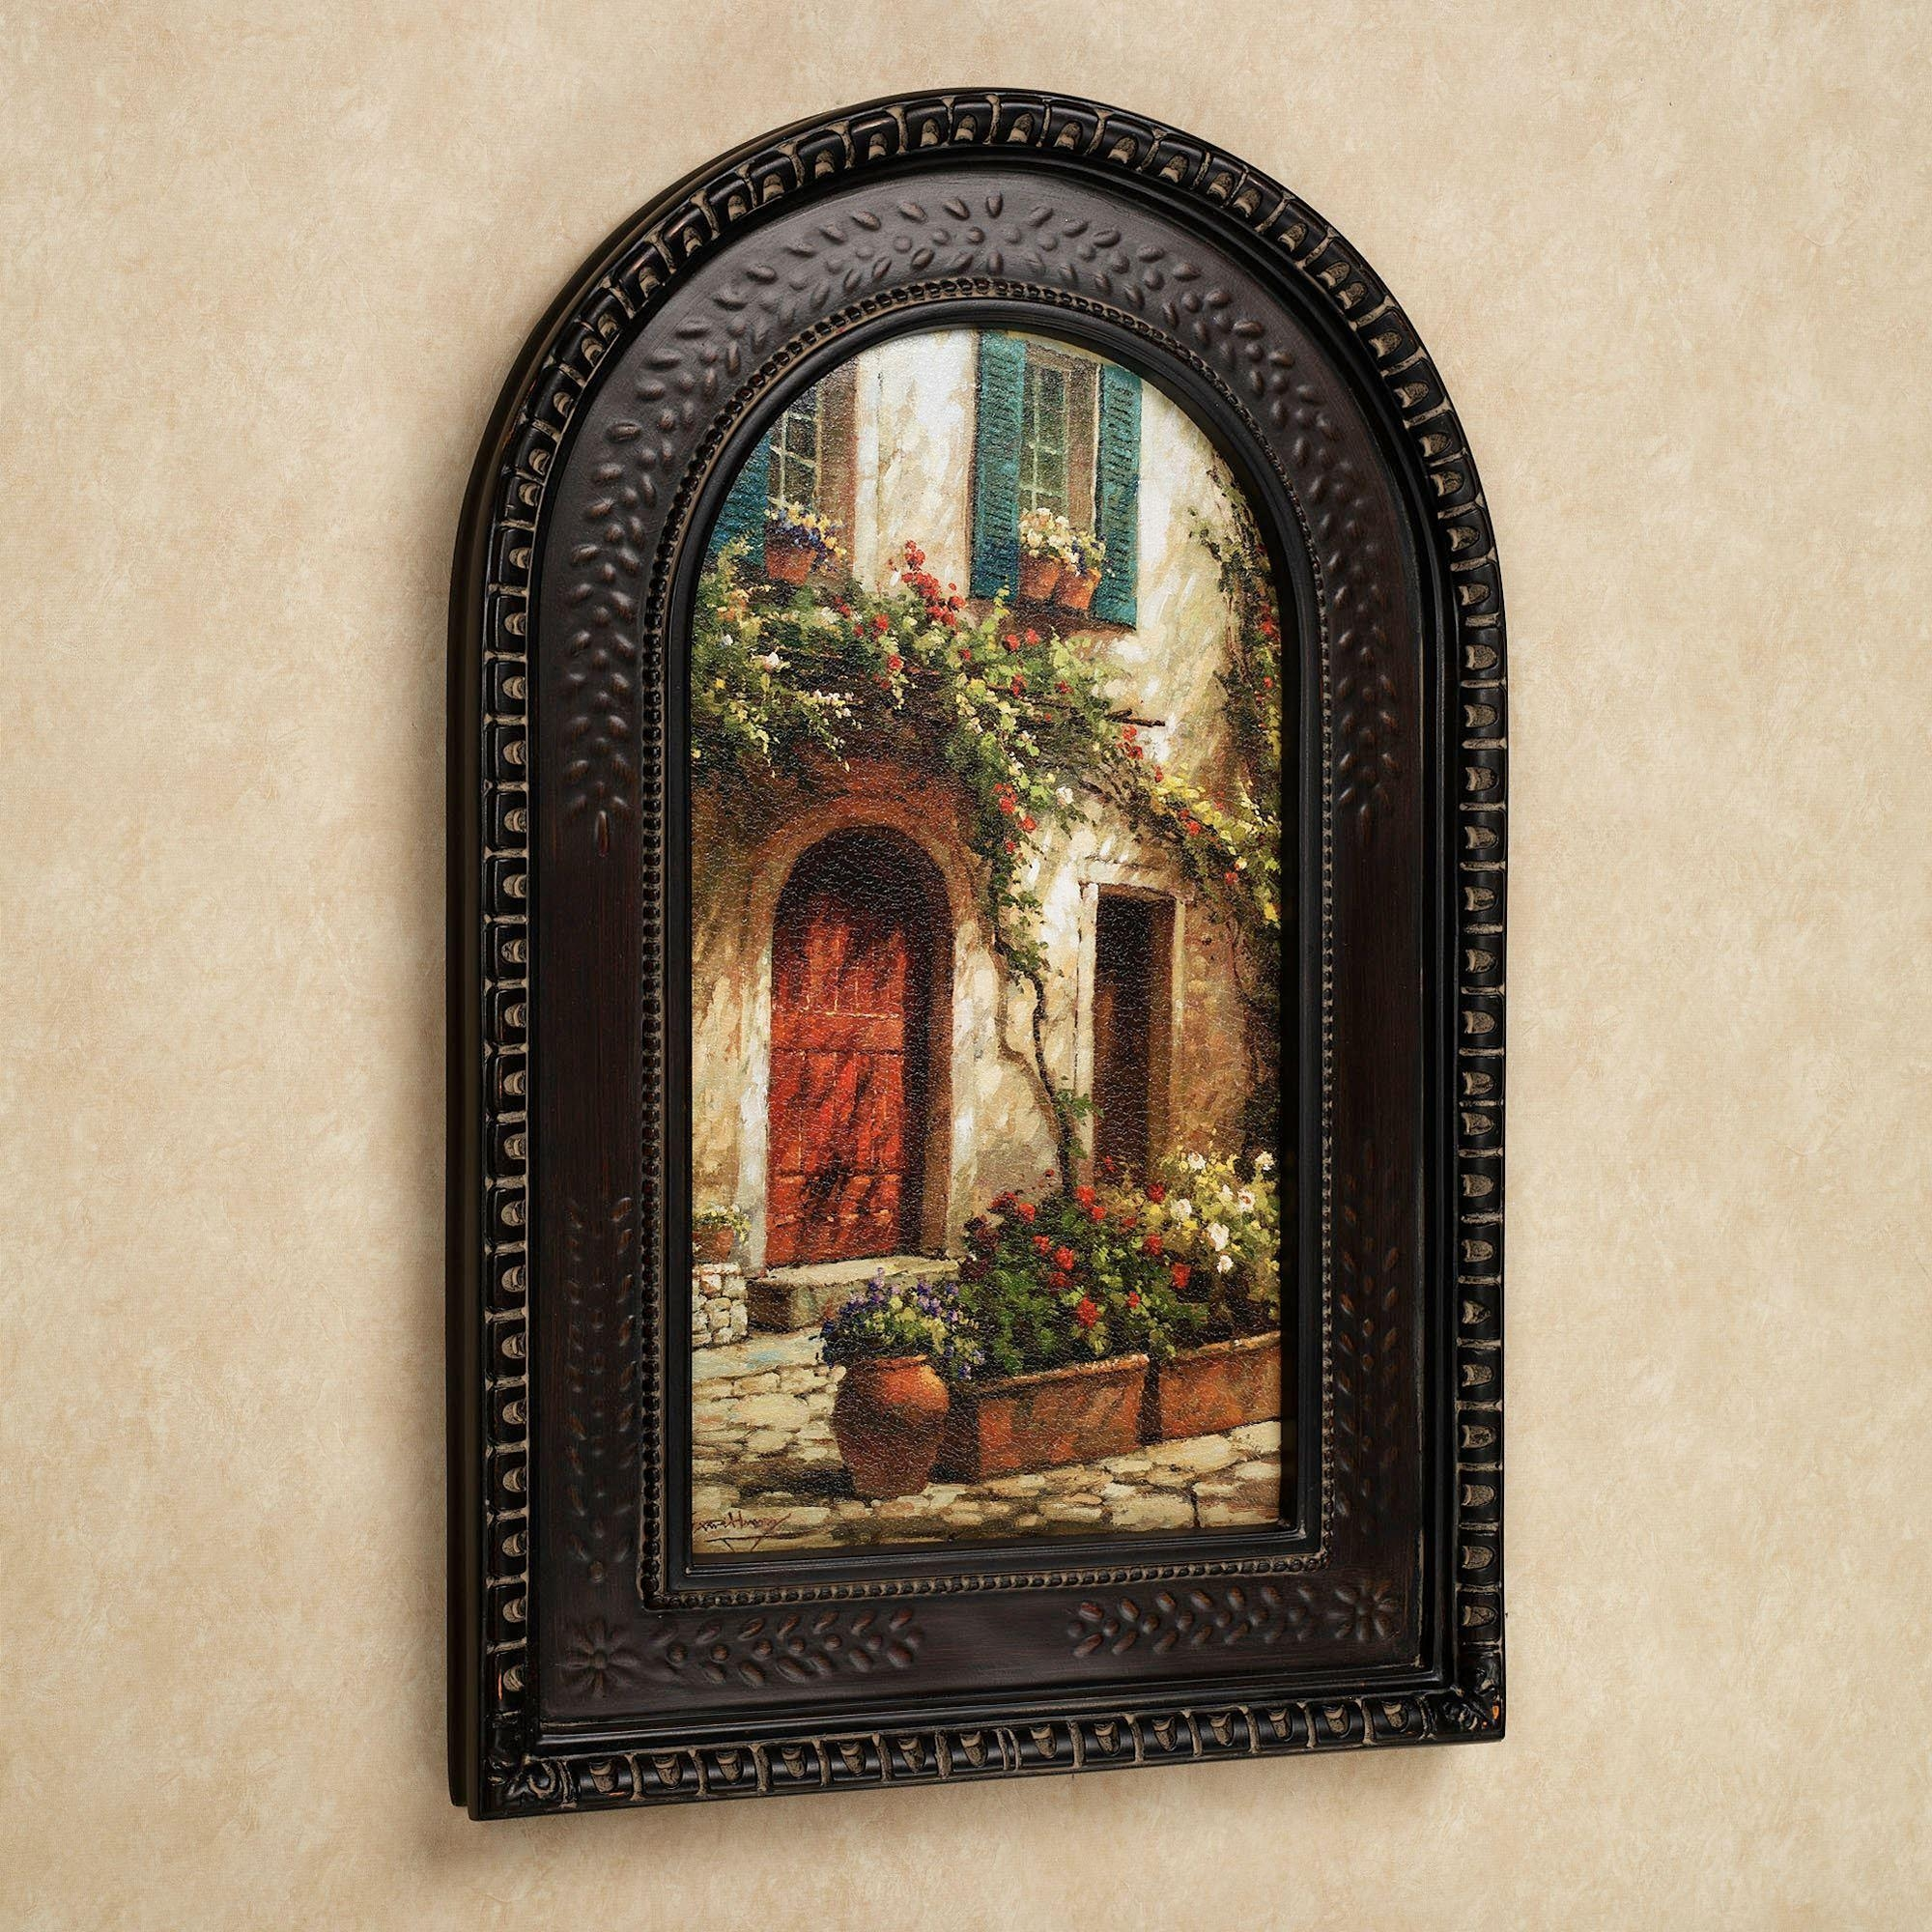 Red Door Italian Scene Arched Framed Wall Art Intended For Framed Italian Wall Art (View 2 of 20)